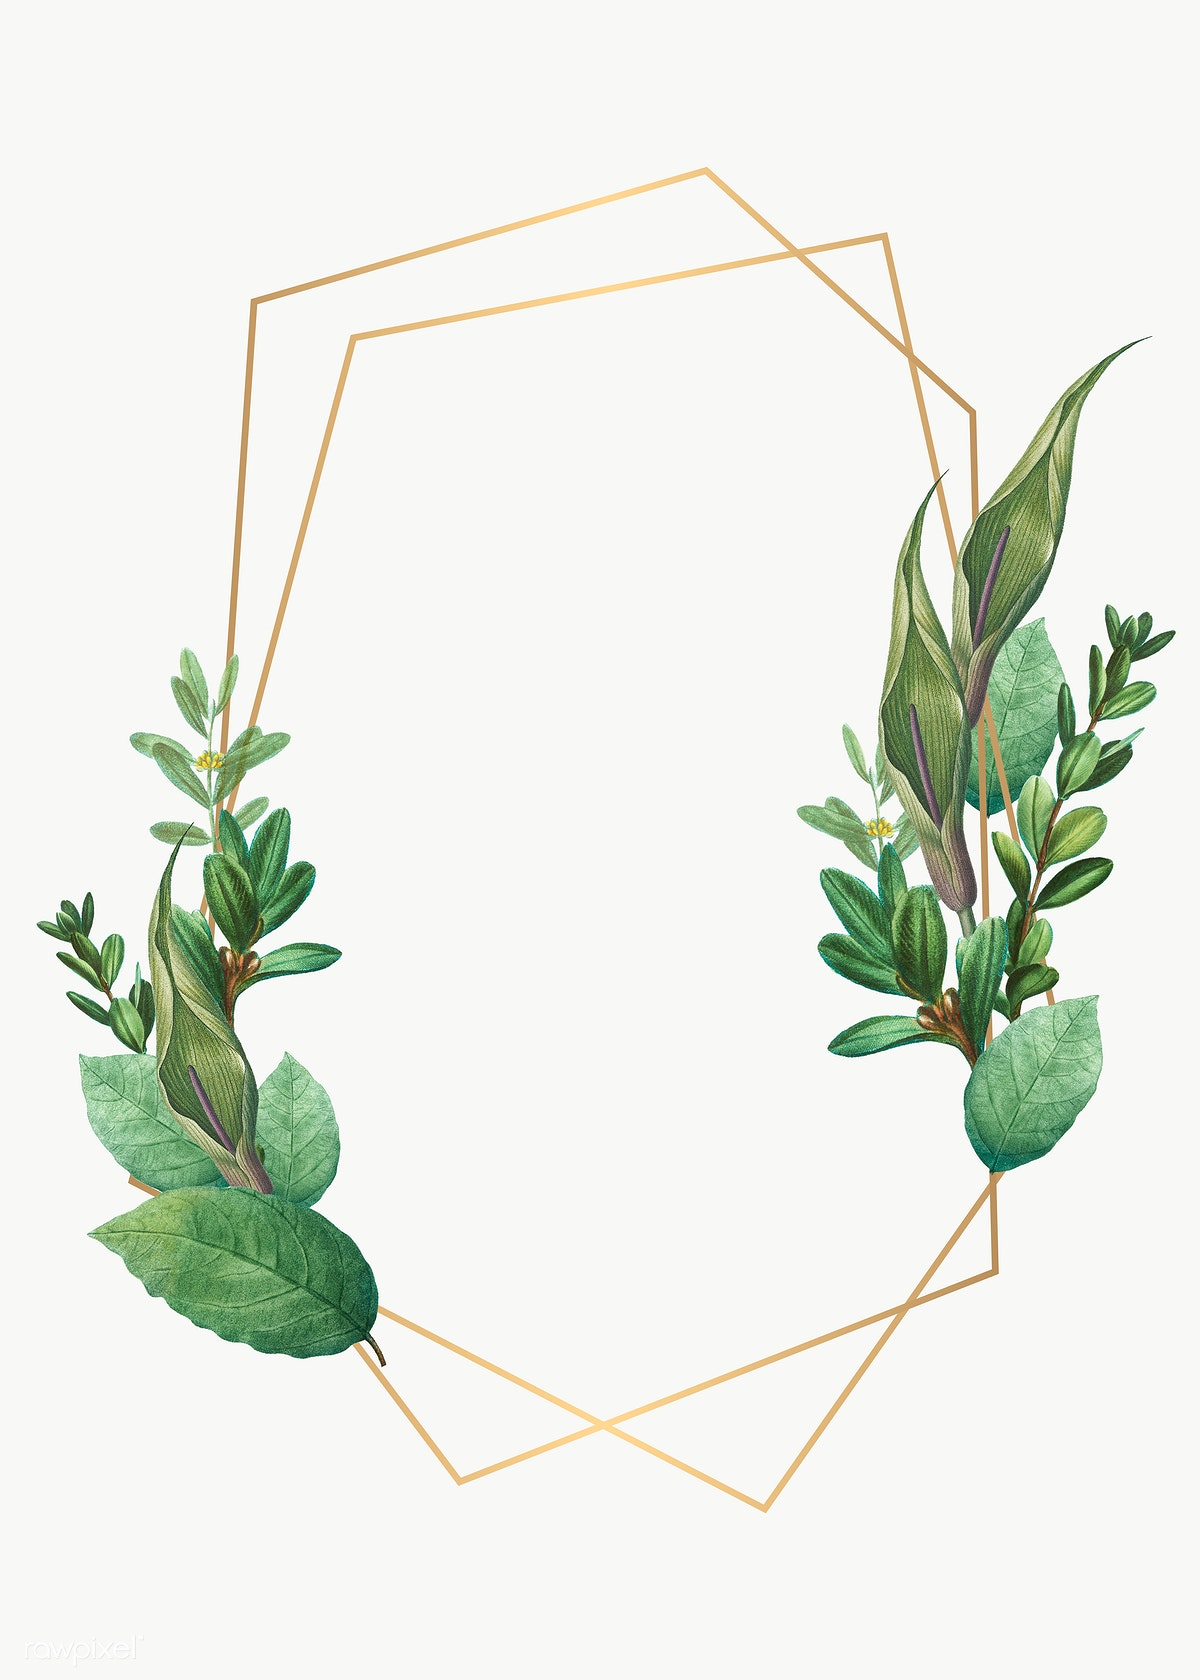 Botanical Themed Design Space Royalty Free Stock